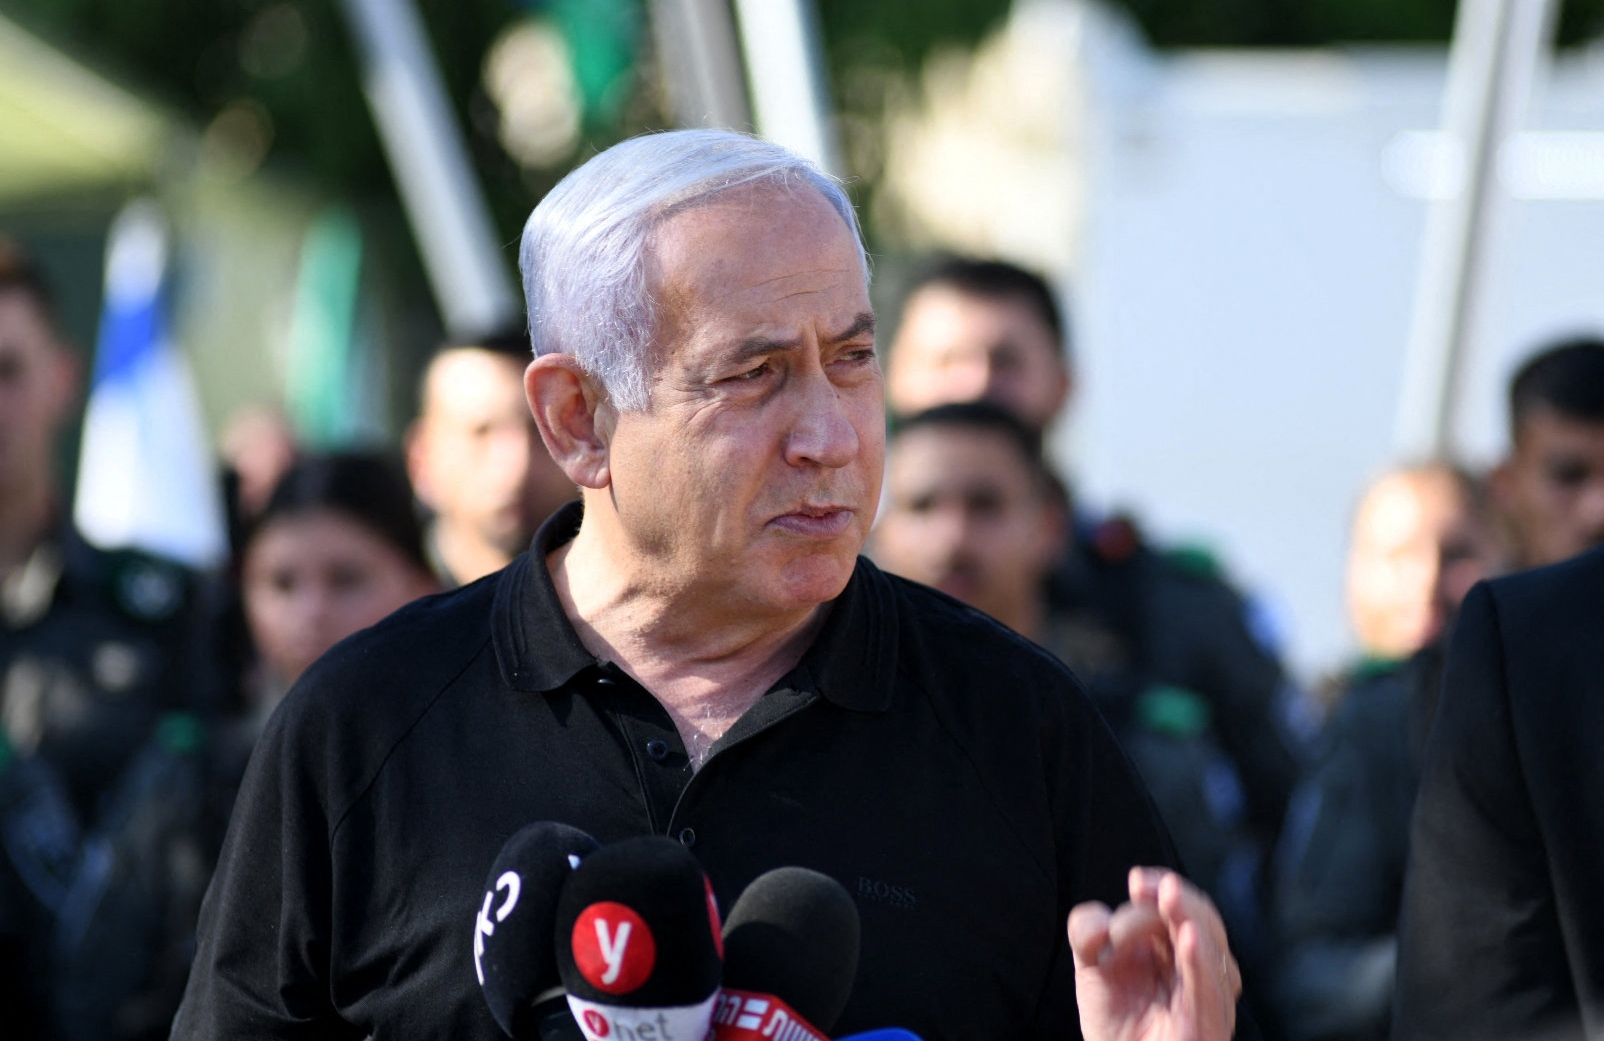 Netanyahu Says Journalists in al-Jalaa Tower Weren't in Danger